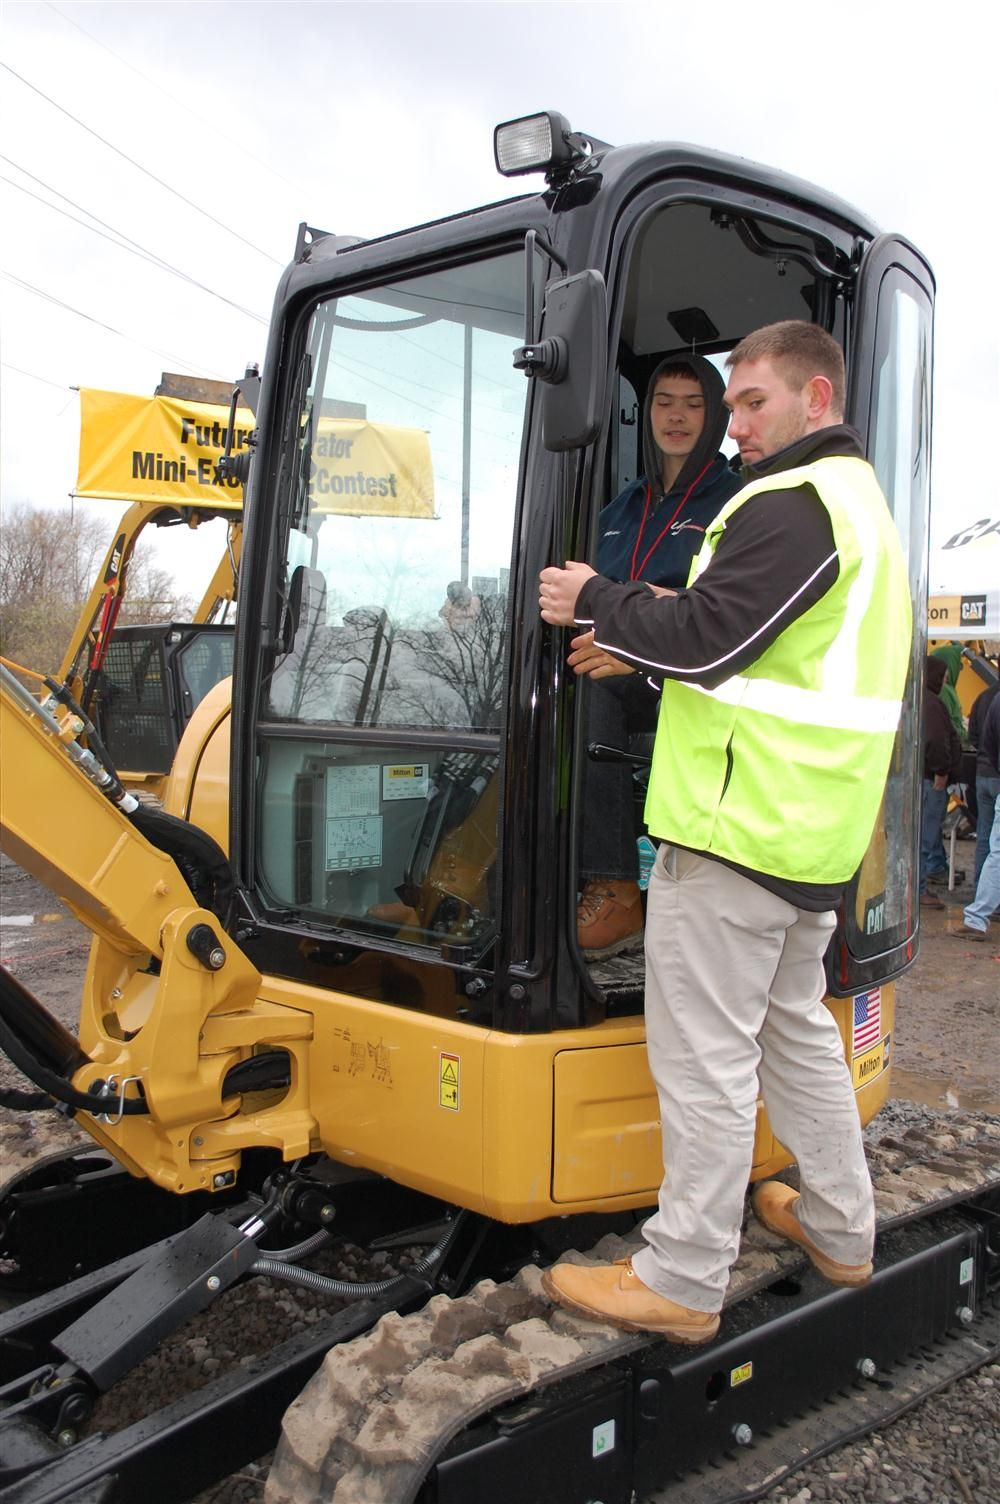 Junior operators were encouraged to check out the operation of Caterpillar's compact equipment. In the cab of a Cat 303.5 is Matt Delfuoco receiving training from Matt Brune of Milton CAT.